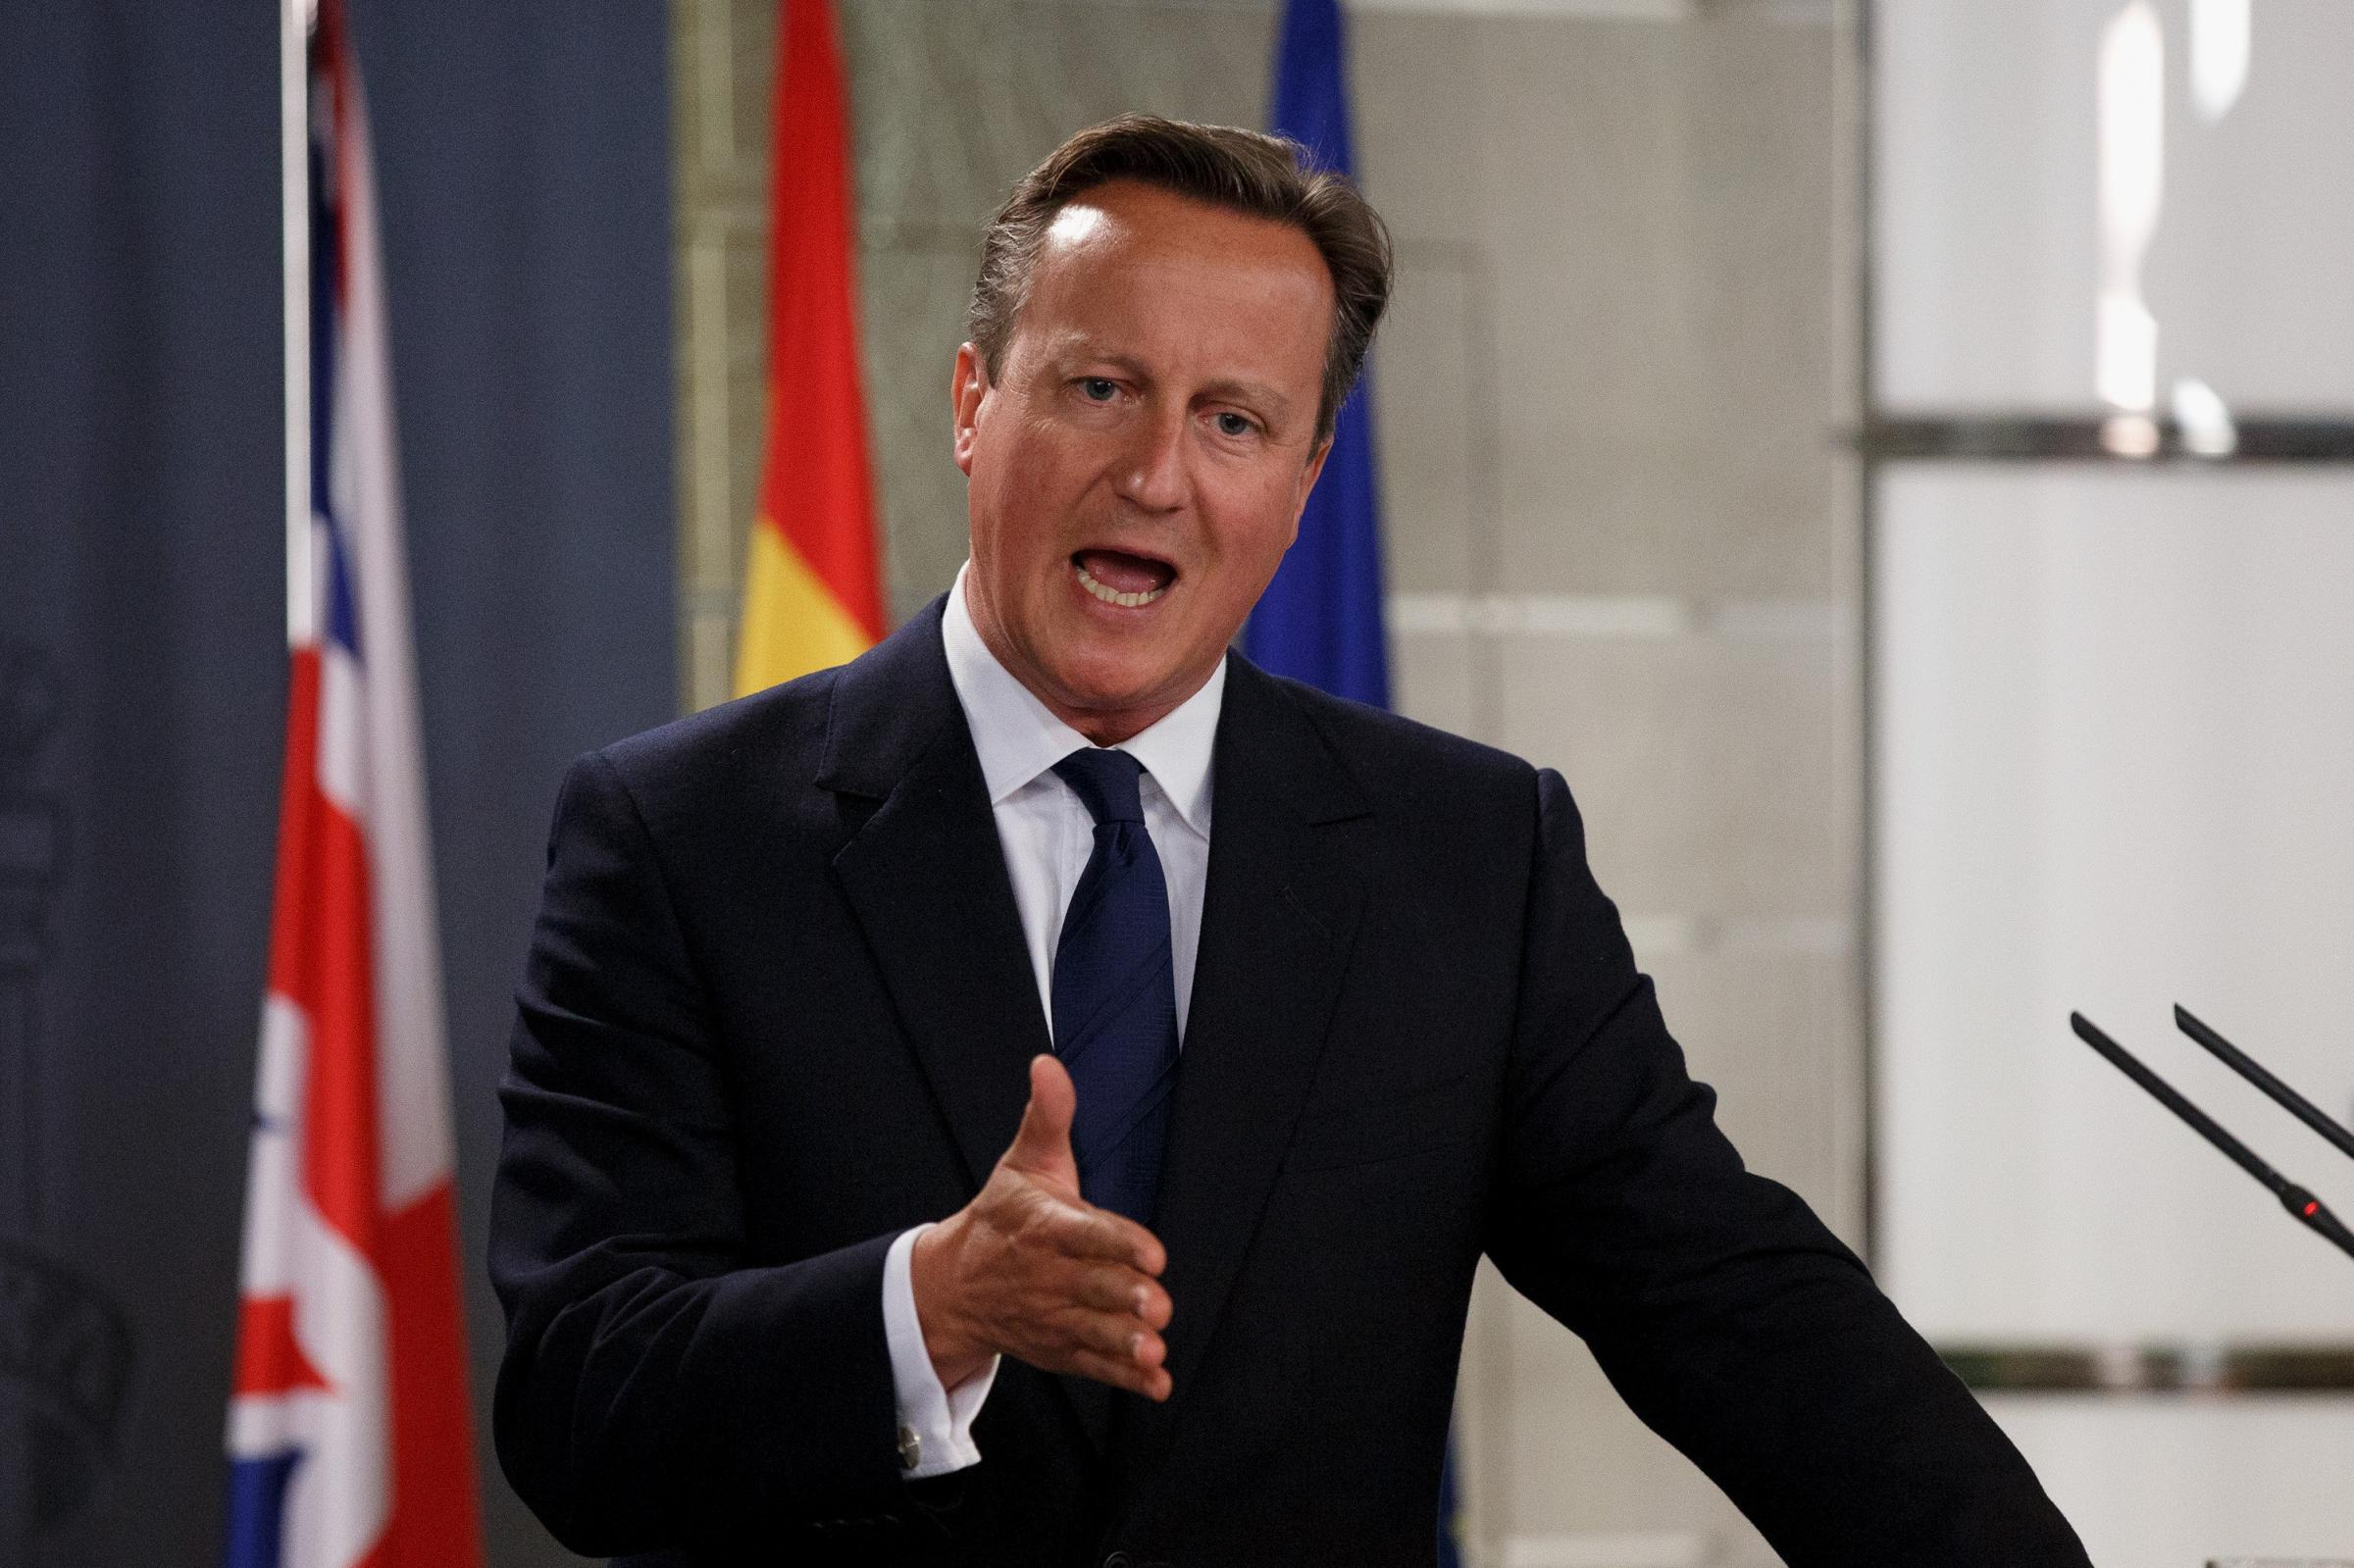 Were the claims about David Cameron and the pig just nonsense?